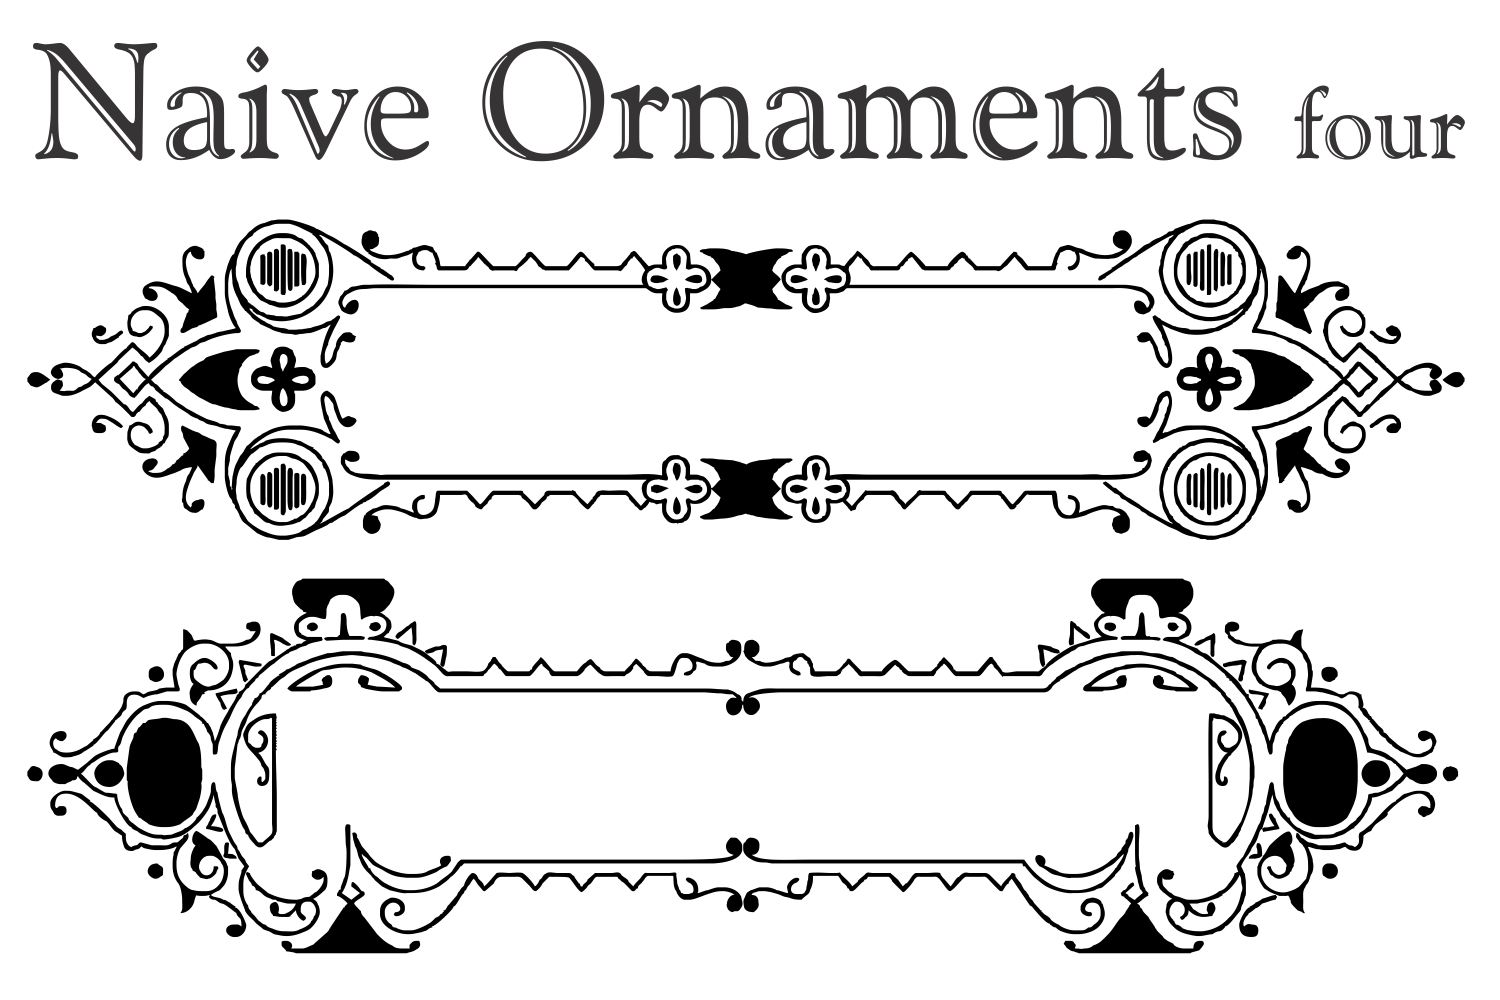 Naive Ornaments Four example image 5